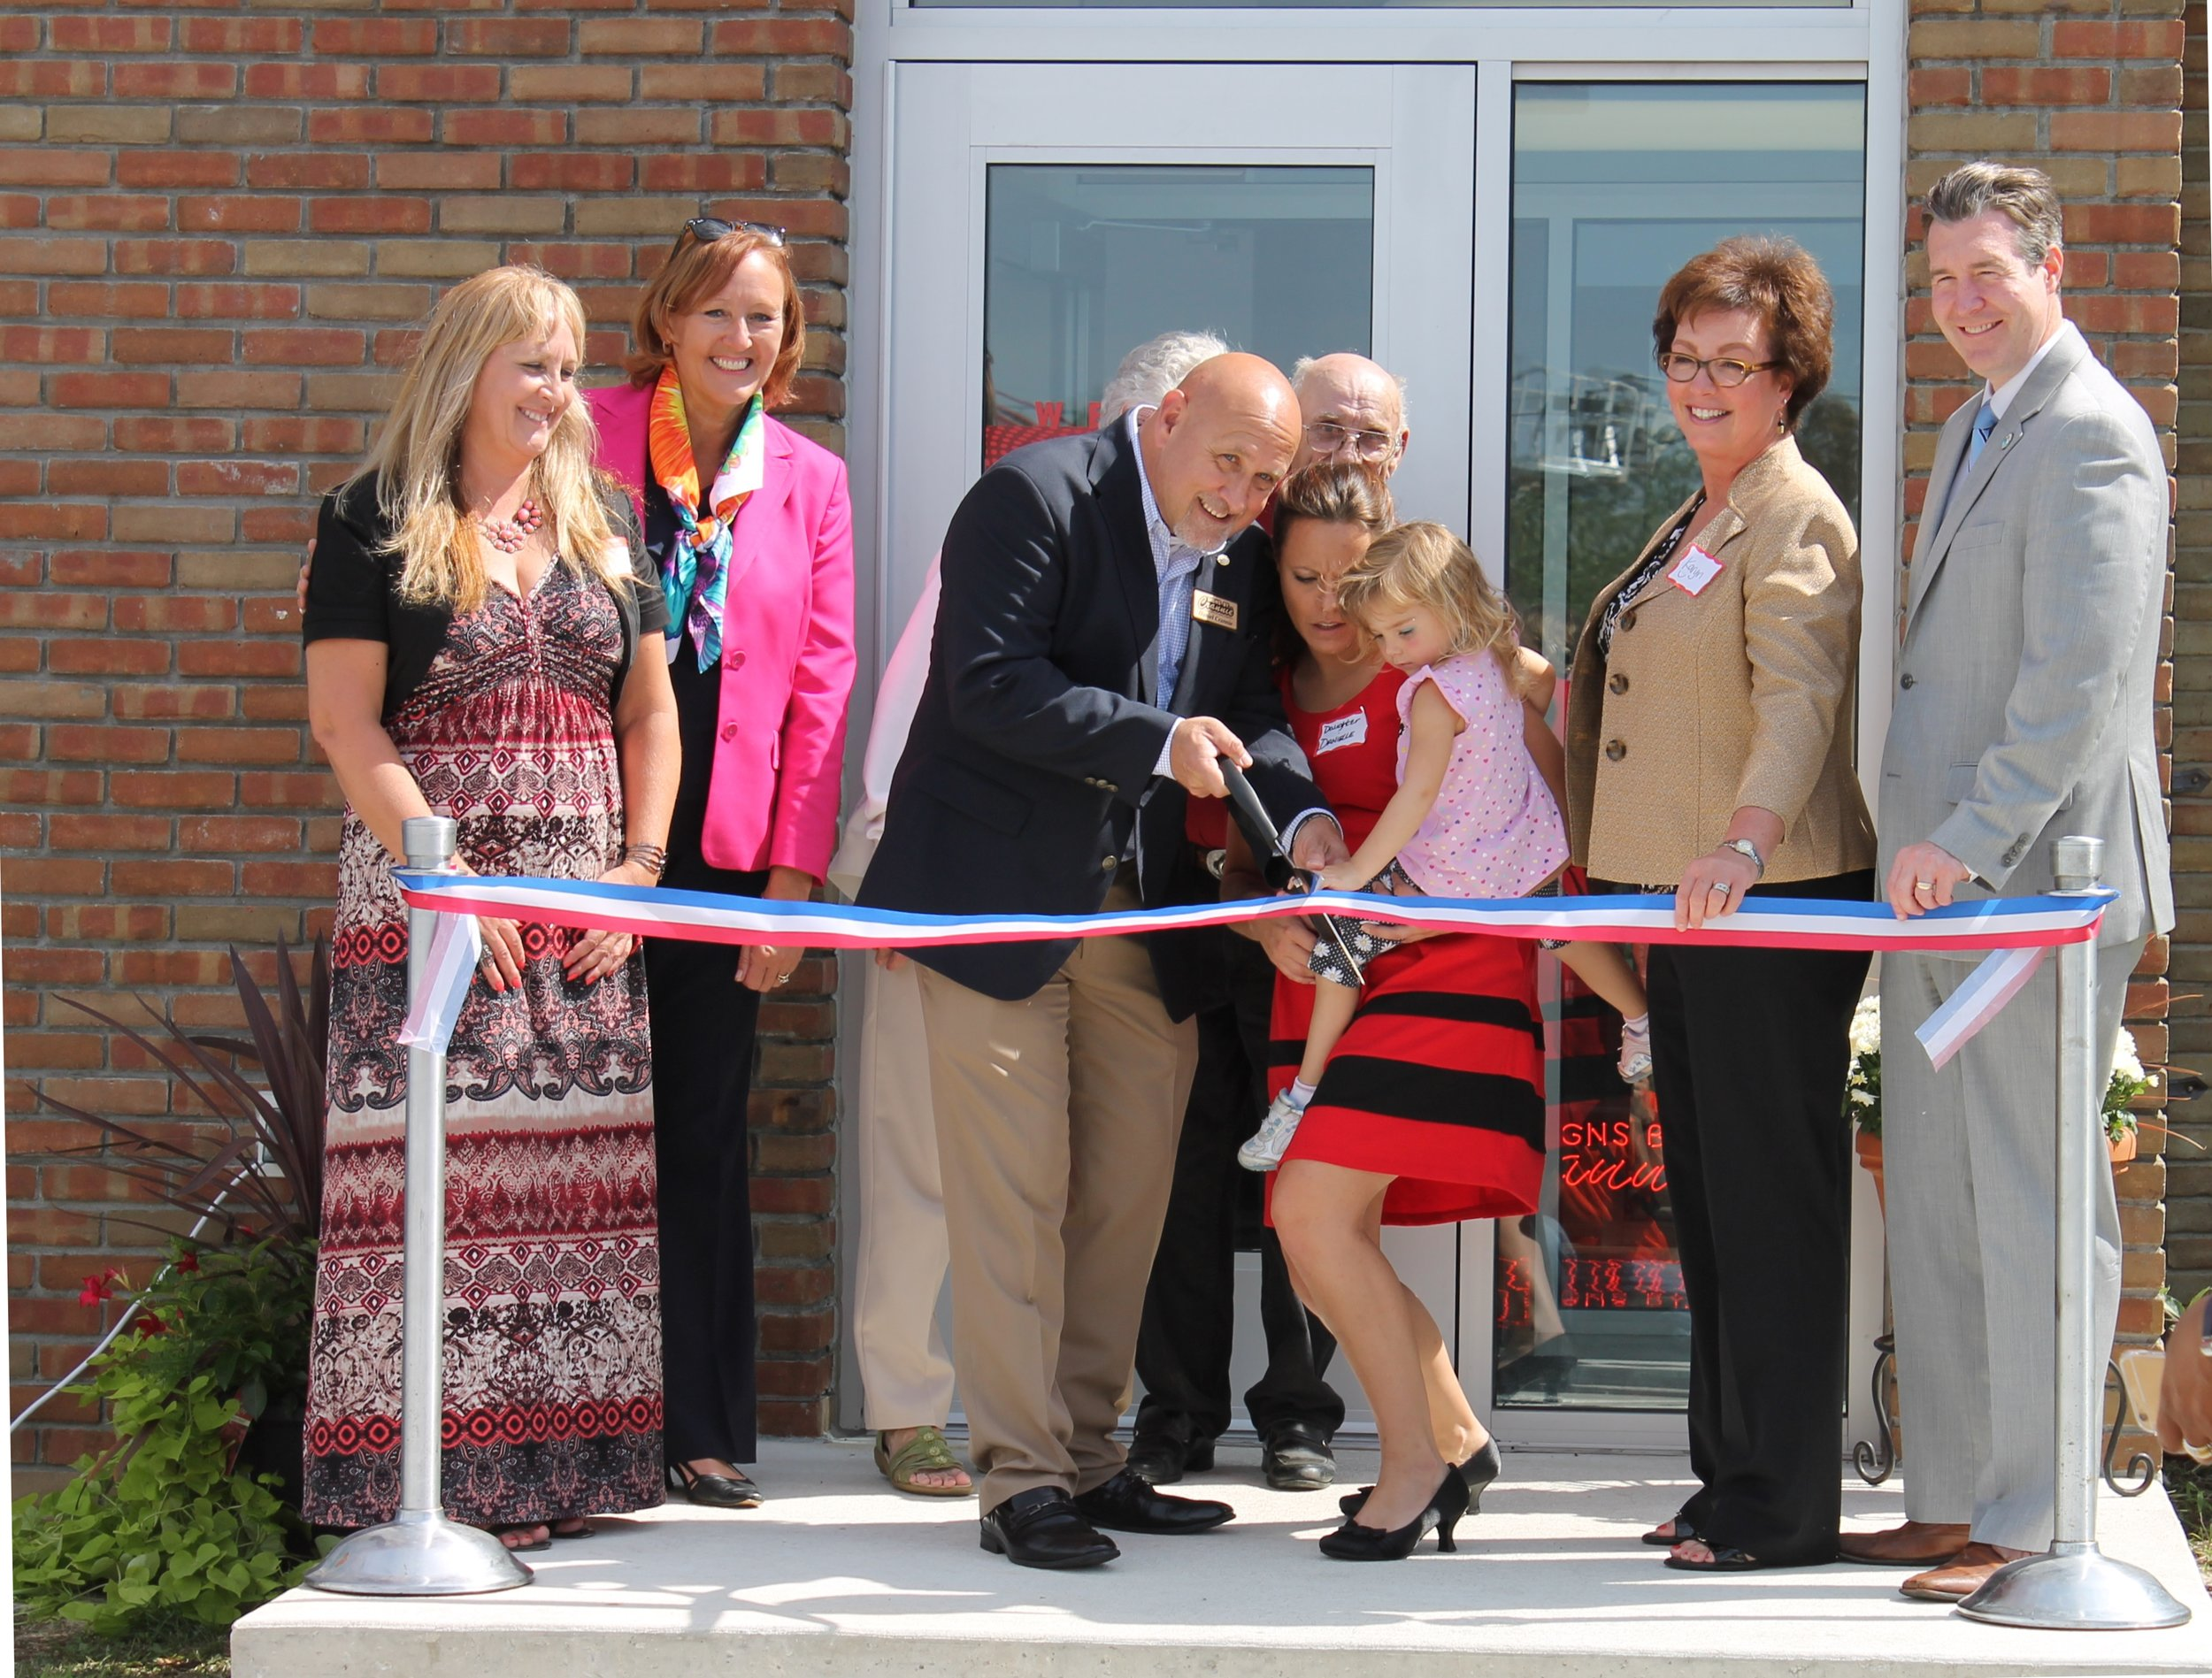 Friends, family, and local dignitaries help celebrate the grand opening of the new Signs by Crannie building in Flint Twp.